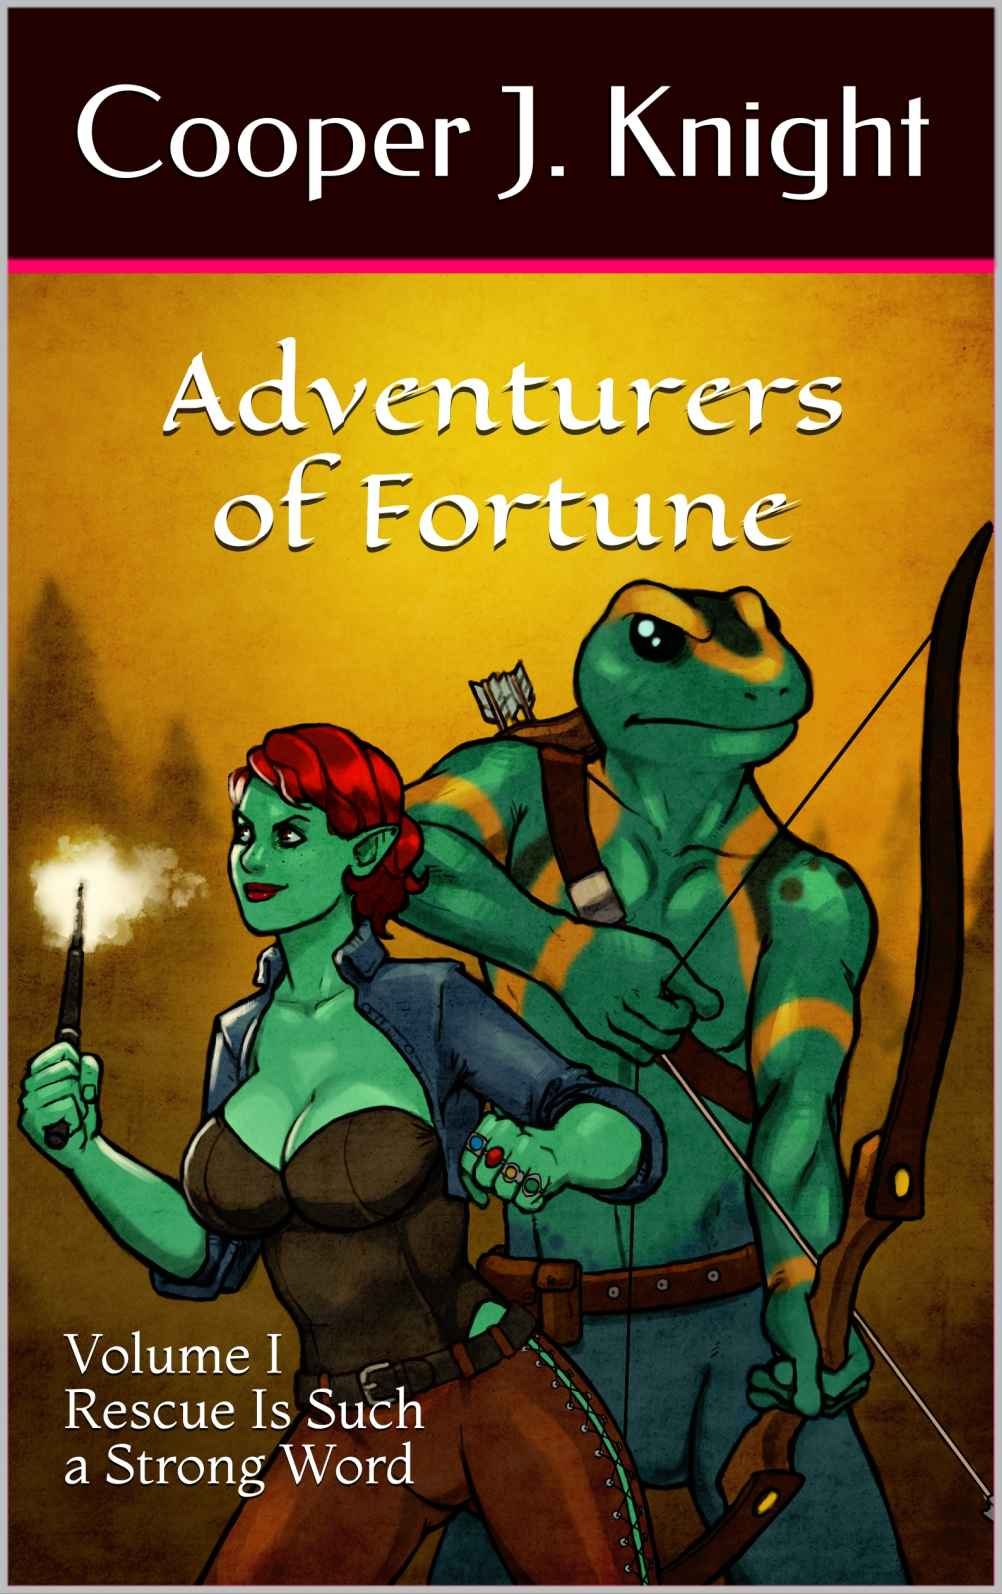 Adventurers of Fortune: Rescue Is Such a Strong Word by Cooper J. Knight